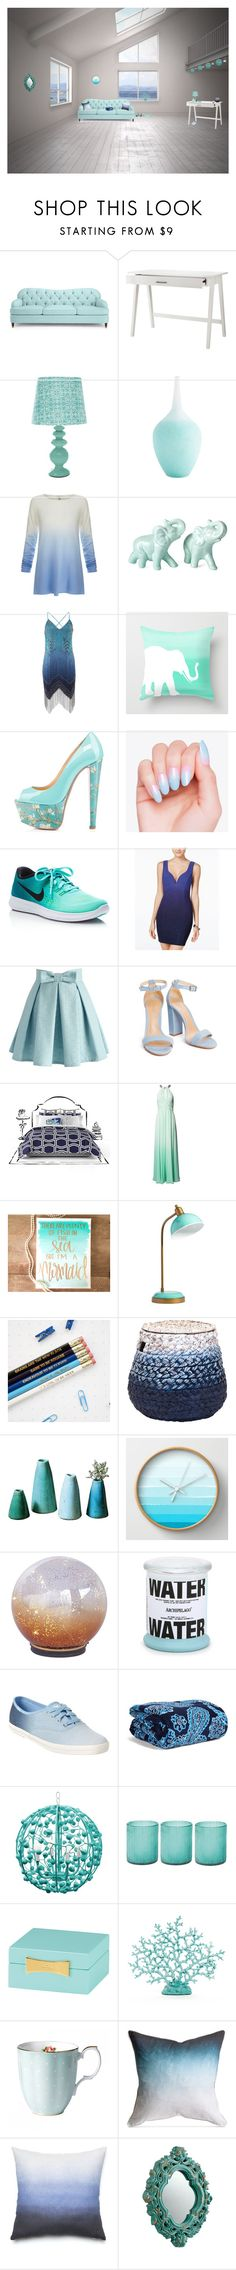 """Accent of Blue"" by sml71402 ❤ liked on Polyvore featuring interior, interiors, interior design, home, home decor, interior decorating, Kate Spade, Threshold, Joie and Haute Hippie"